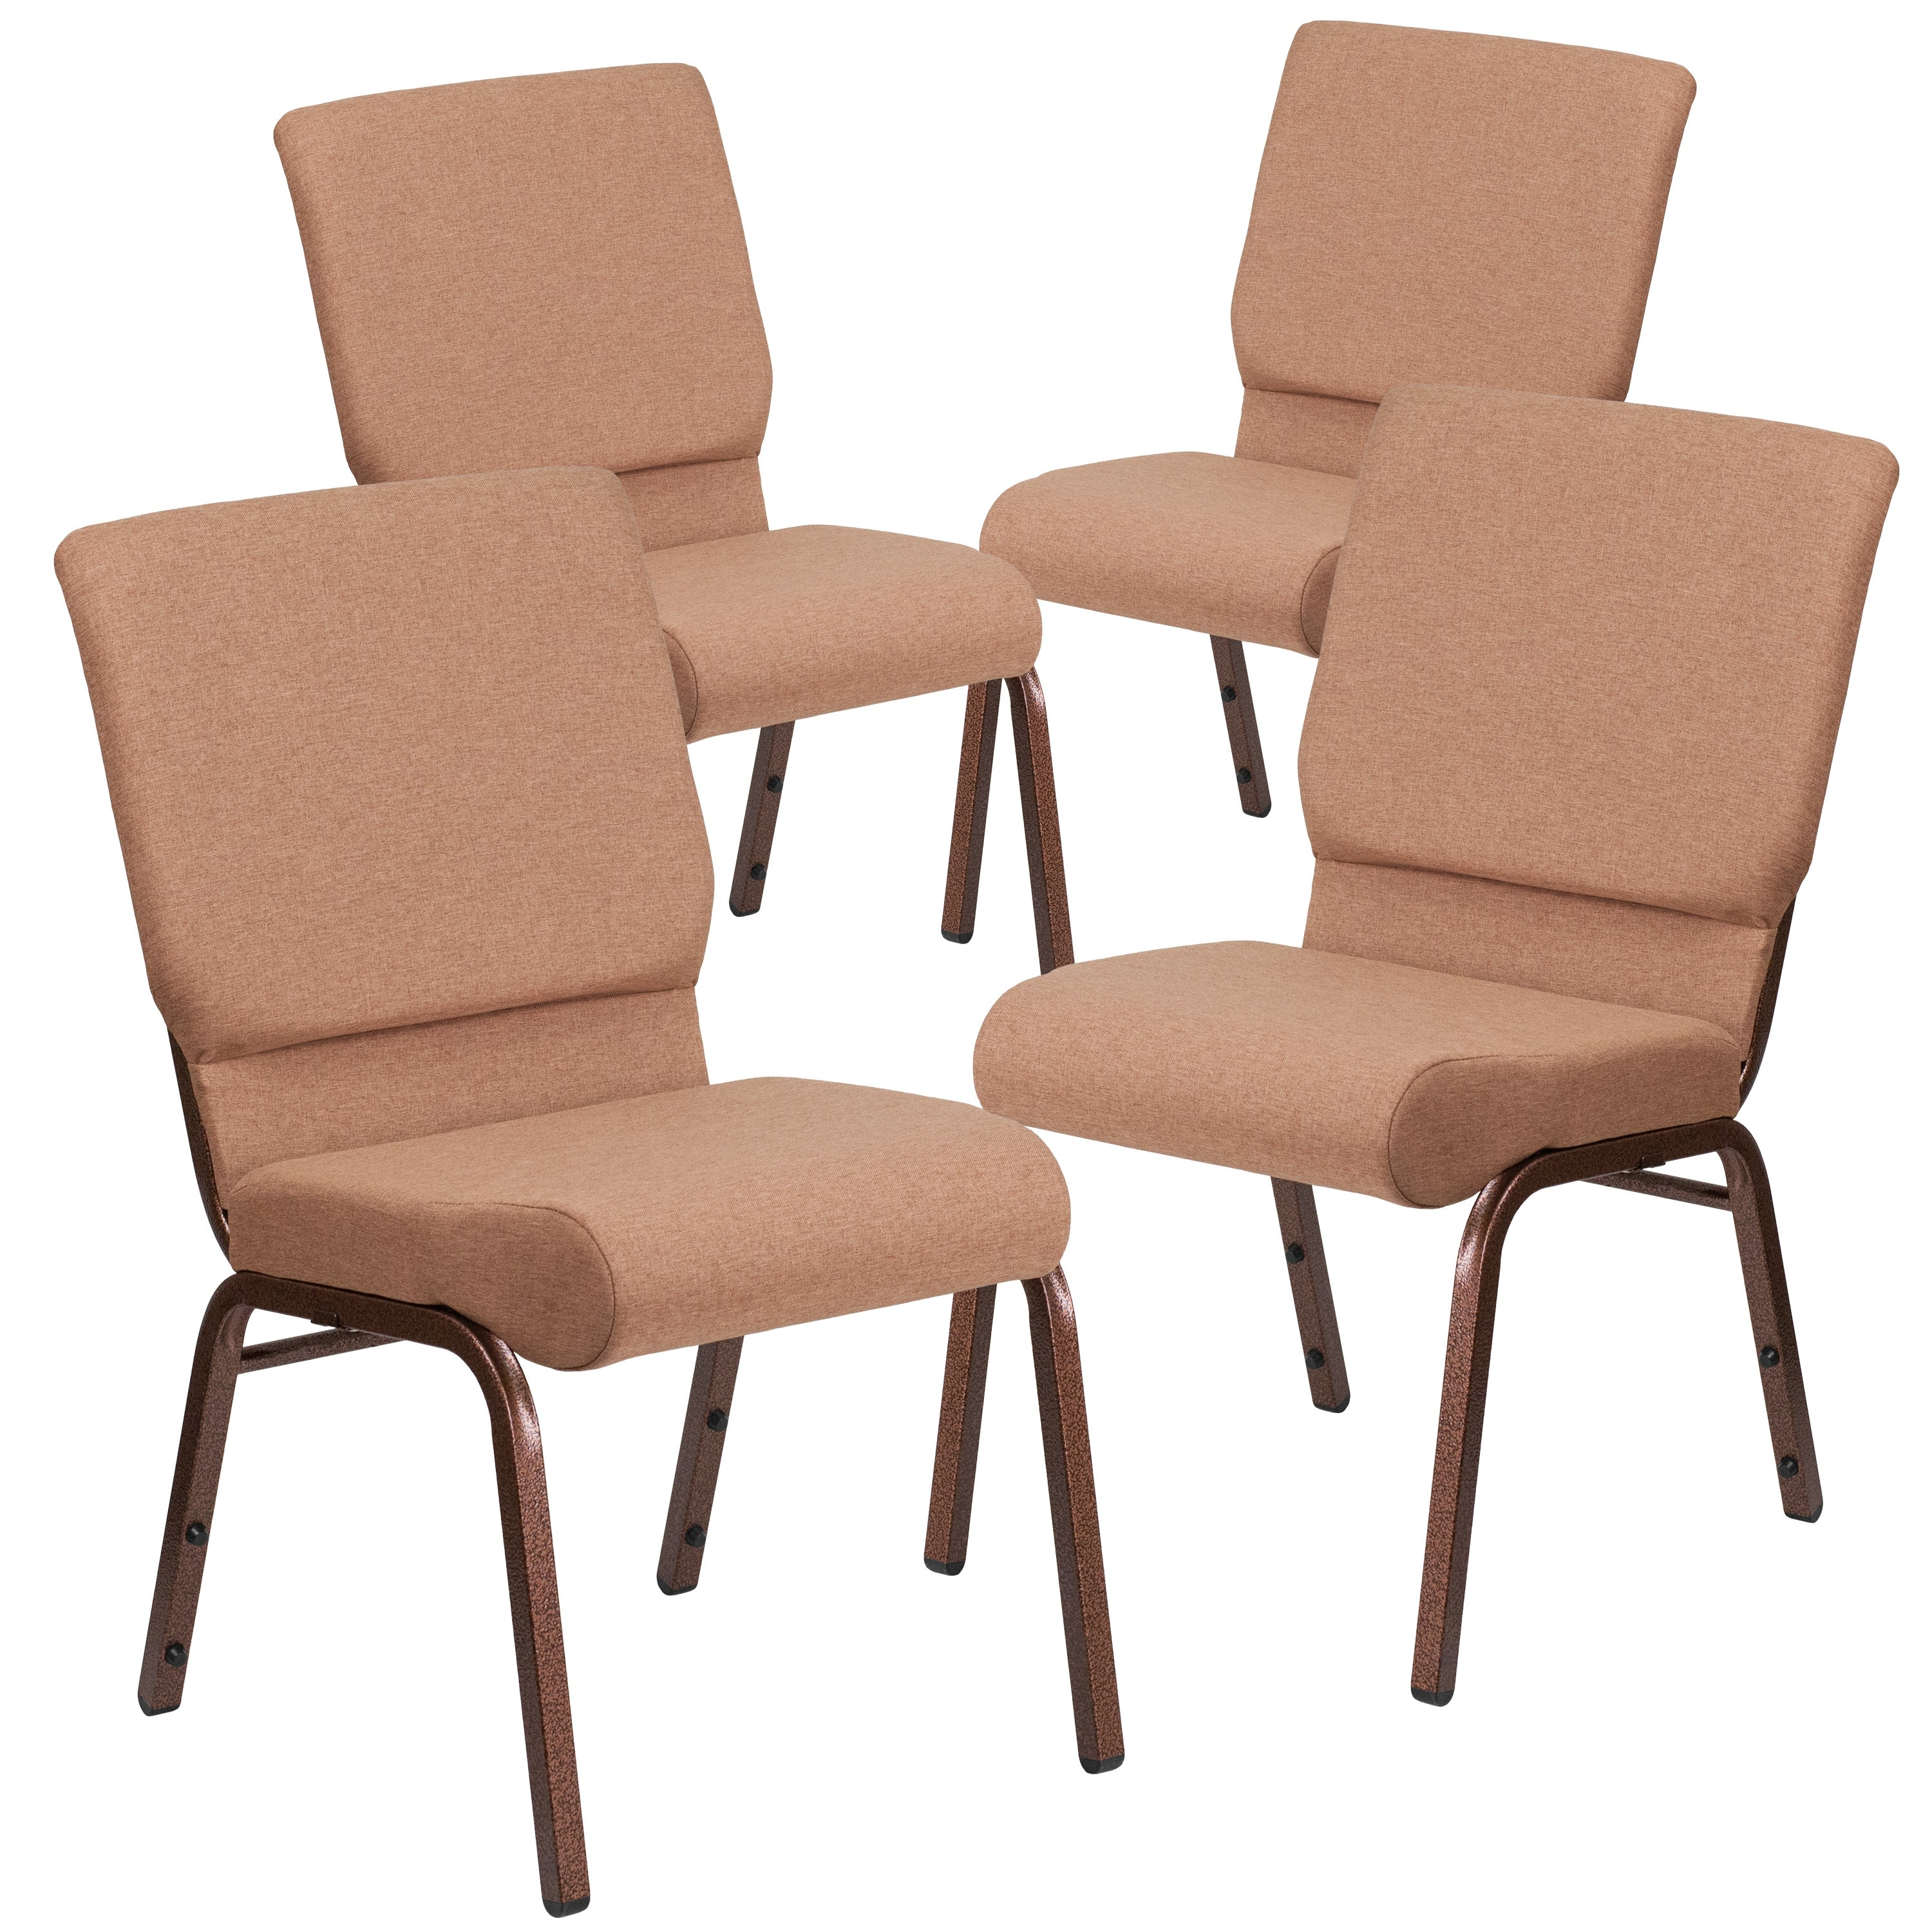 thumbnail 9 - 4-Pack-18-5-034-W-Stacking-Church-Chair-in-Fabric-Copper-Vein